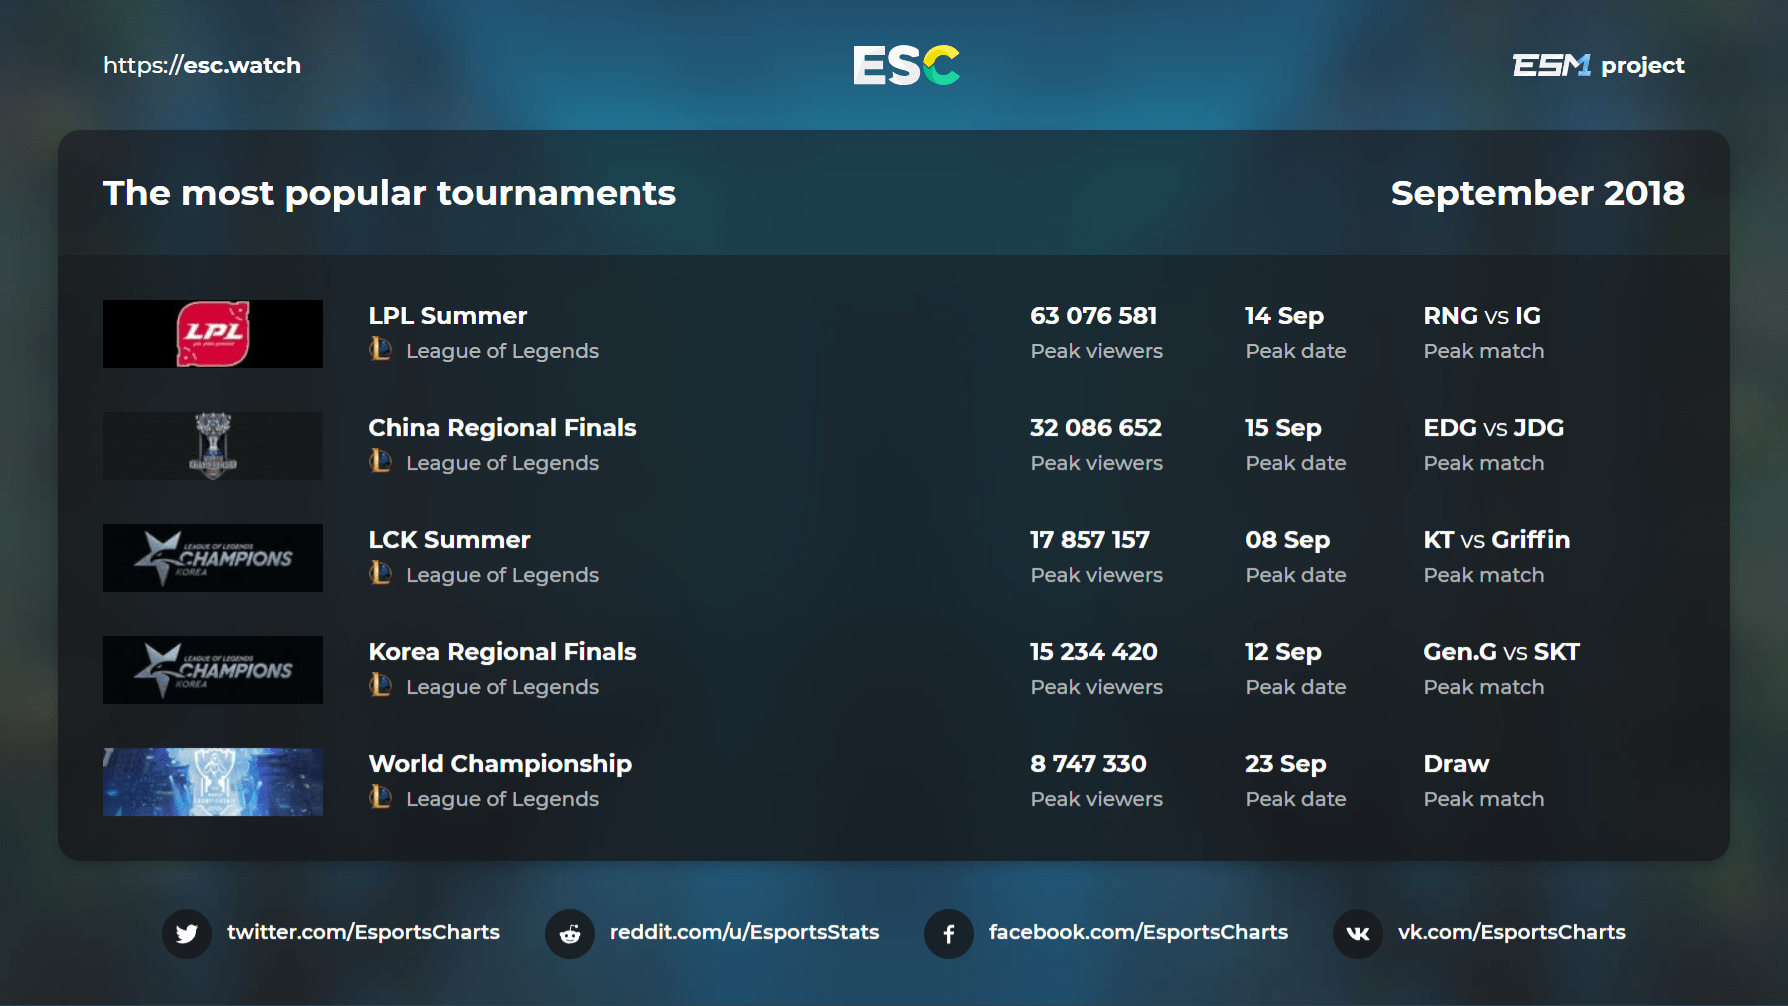 The most popular tournaments of September 2018